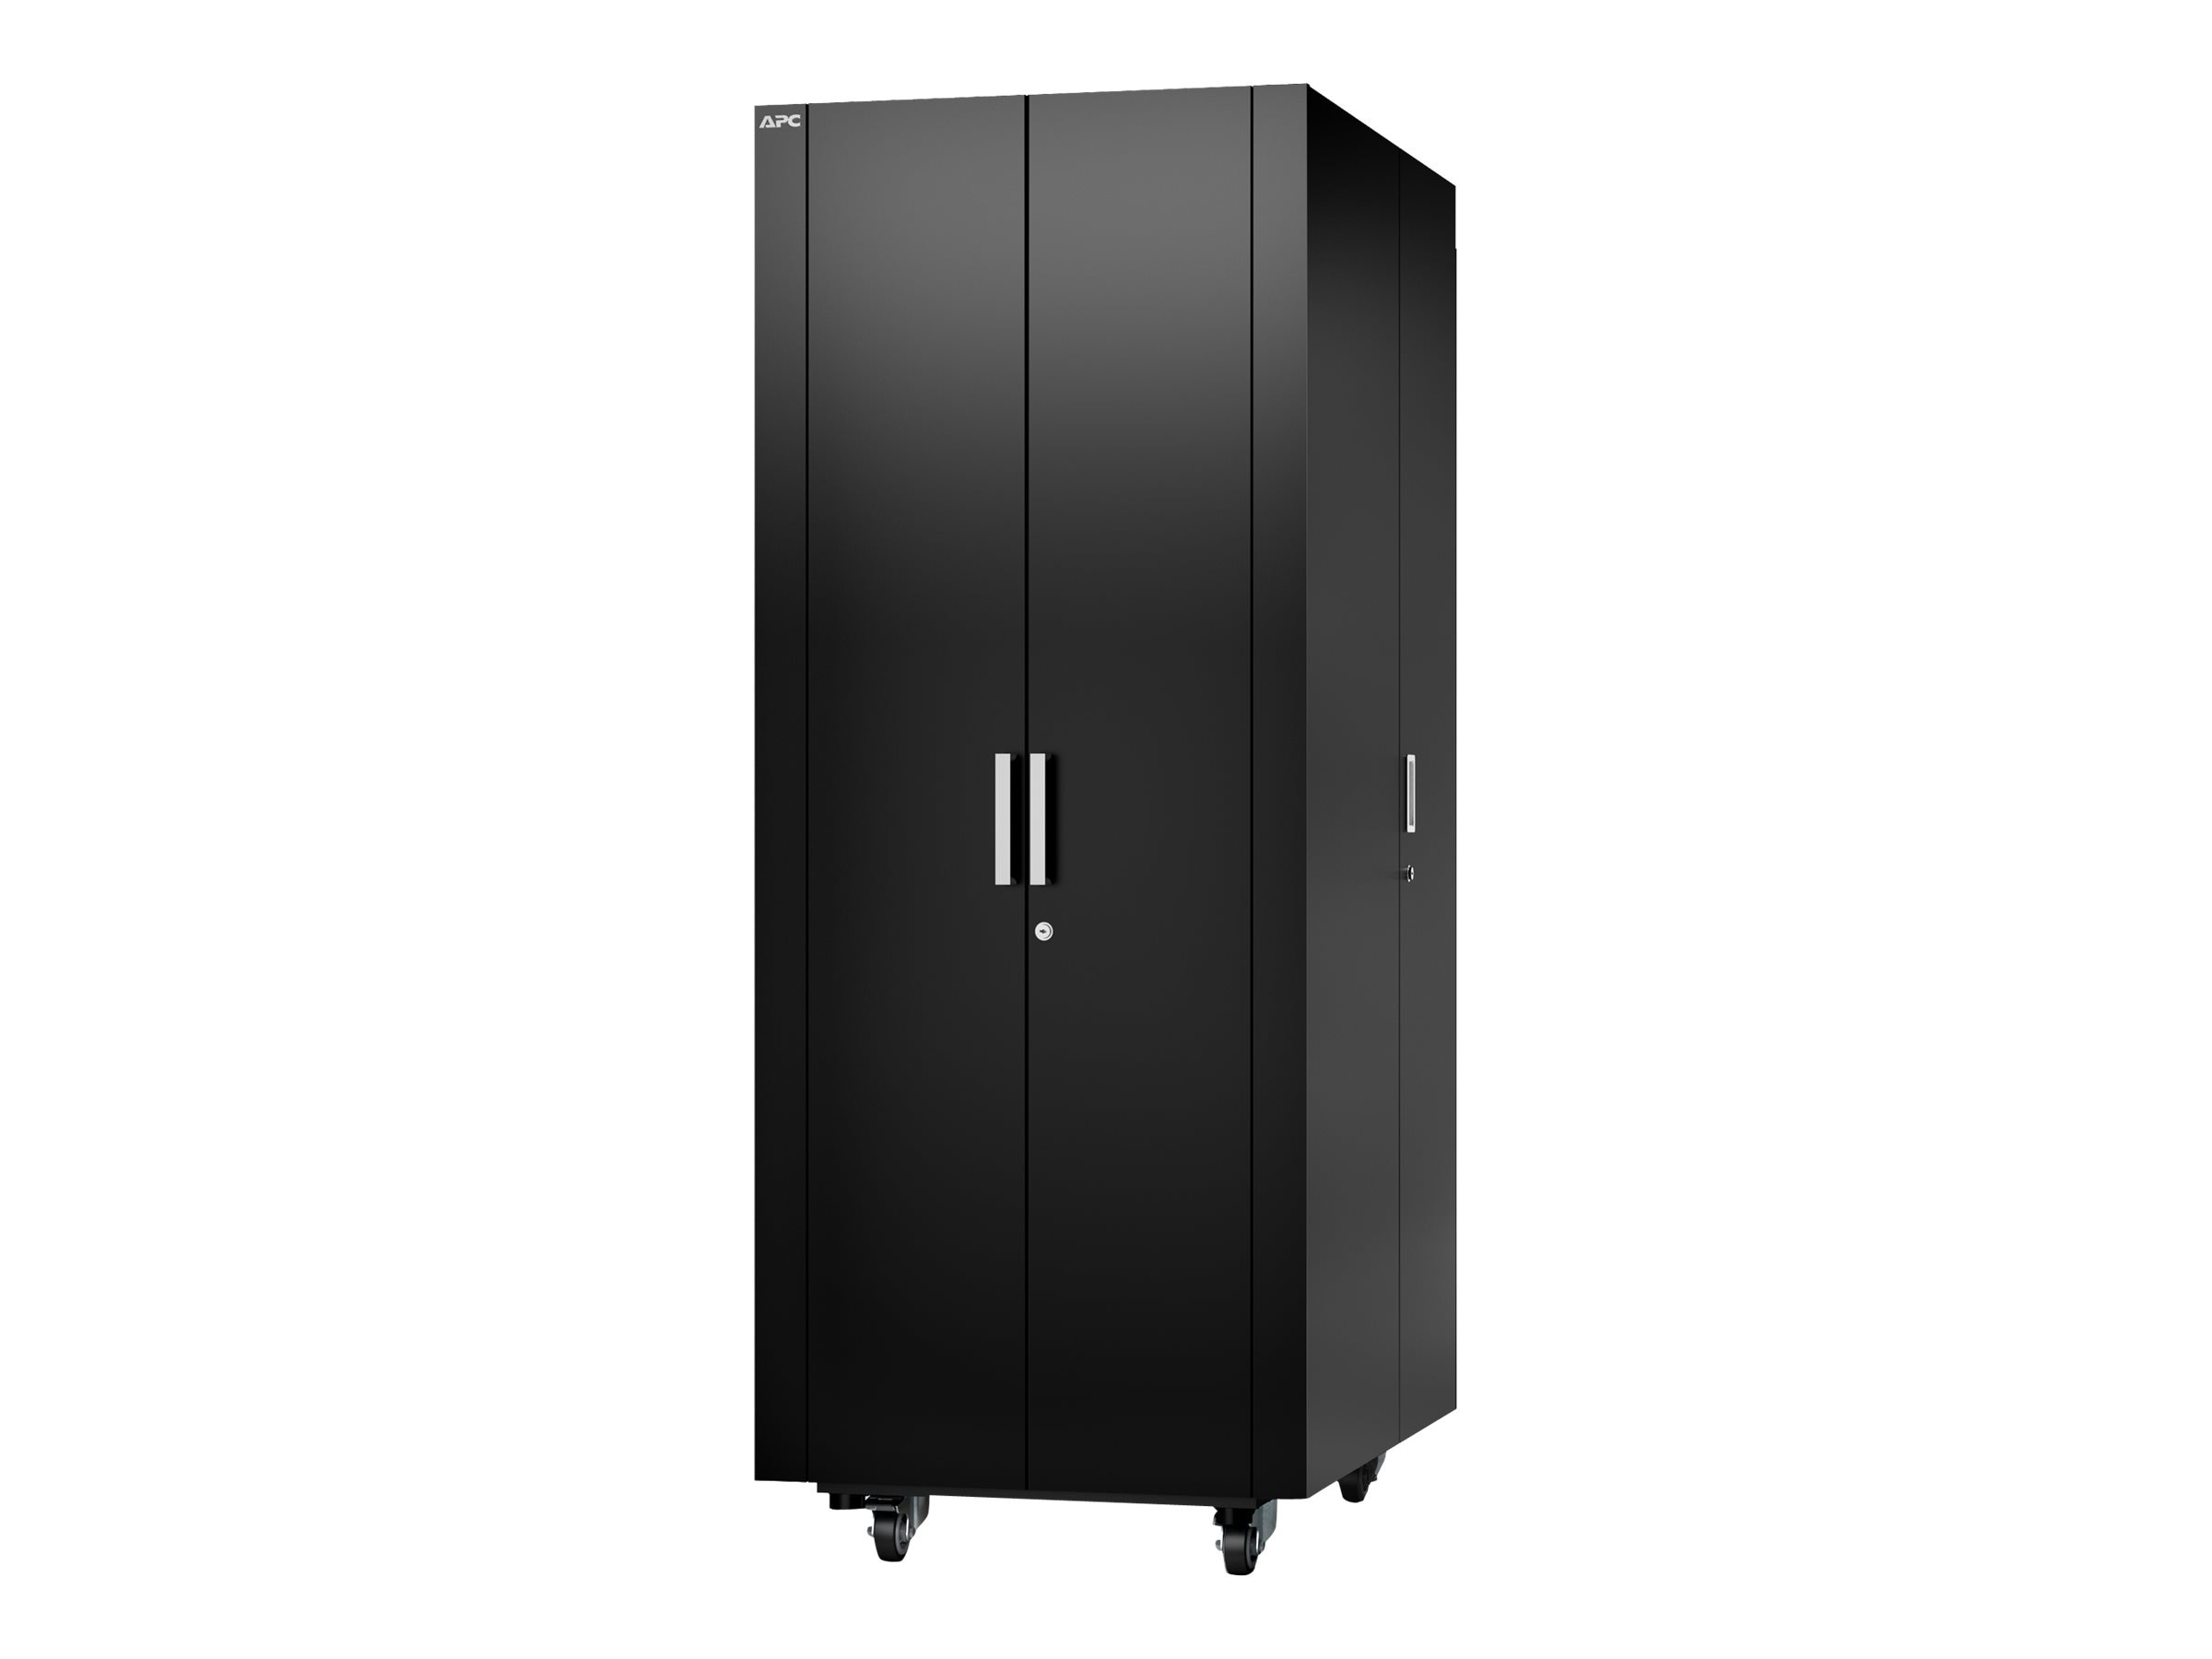 APC Netshelter CX 38U x 750mm x 1130mm Deep Enclosure, Black, AR4038X429, 31810823, Racks & Cabinets